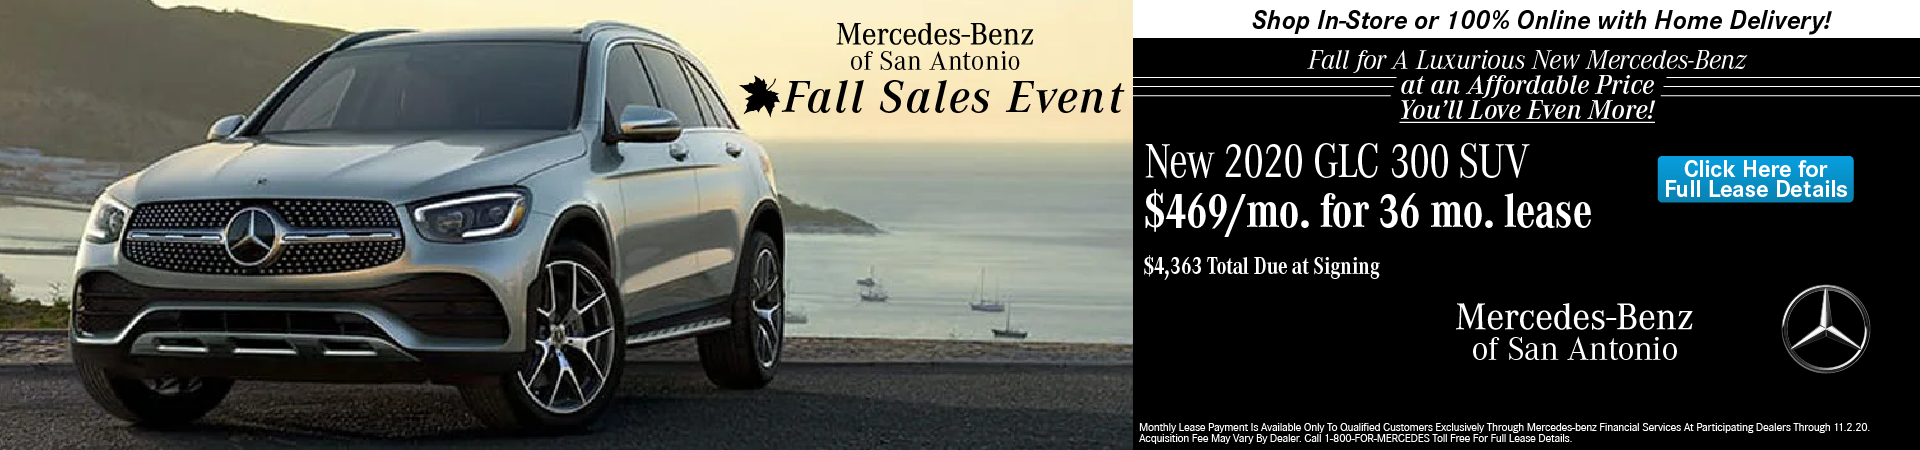 MB of San Antonio 2020 GLC Lease Special